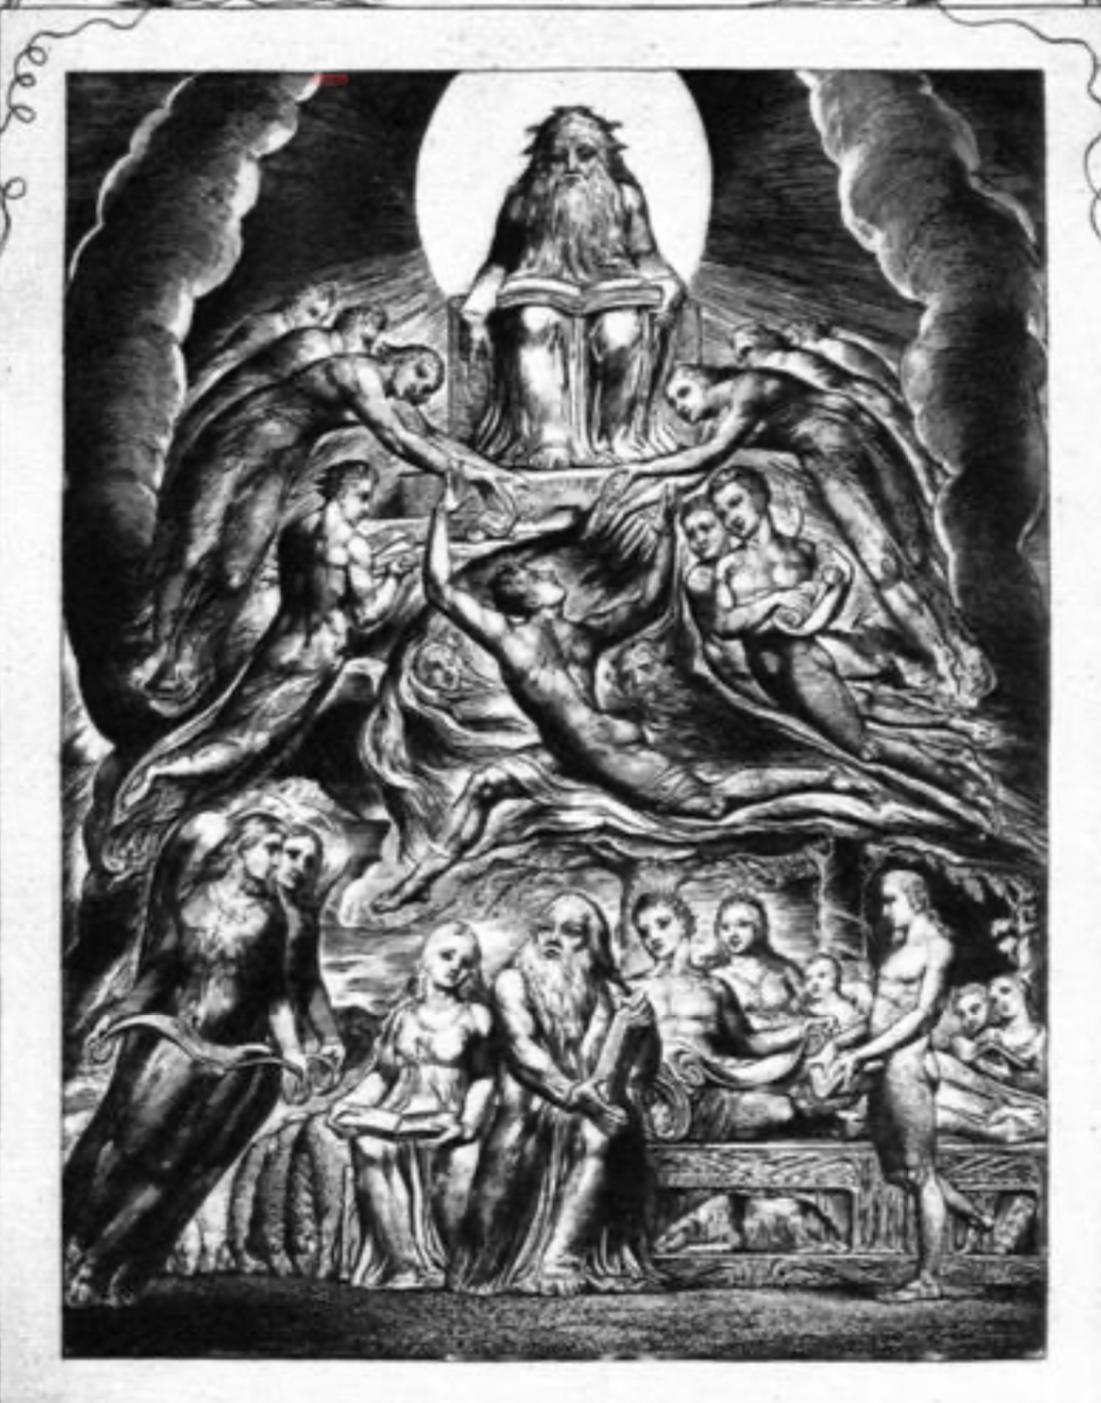 God and angels presiding over Job and his family